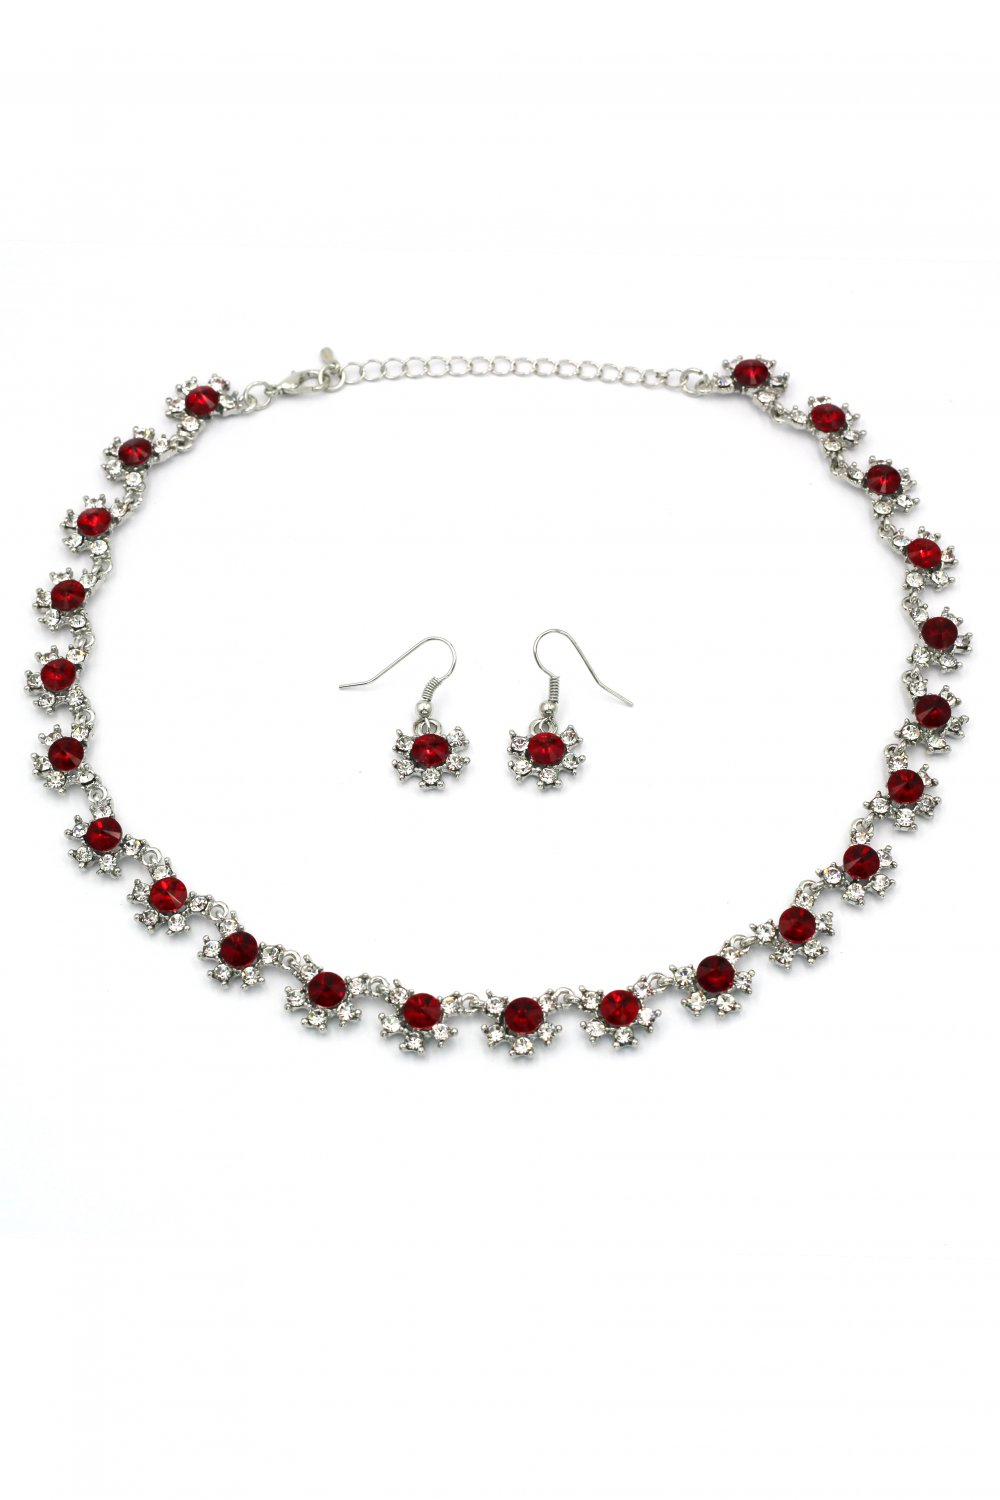 Classic red crystal necklace earrings silver set